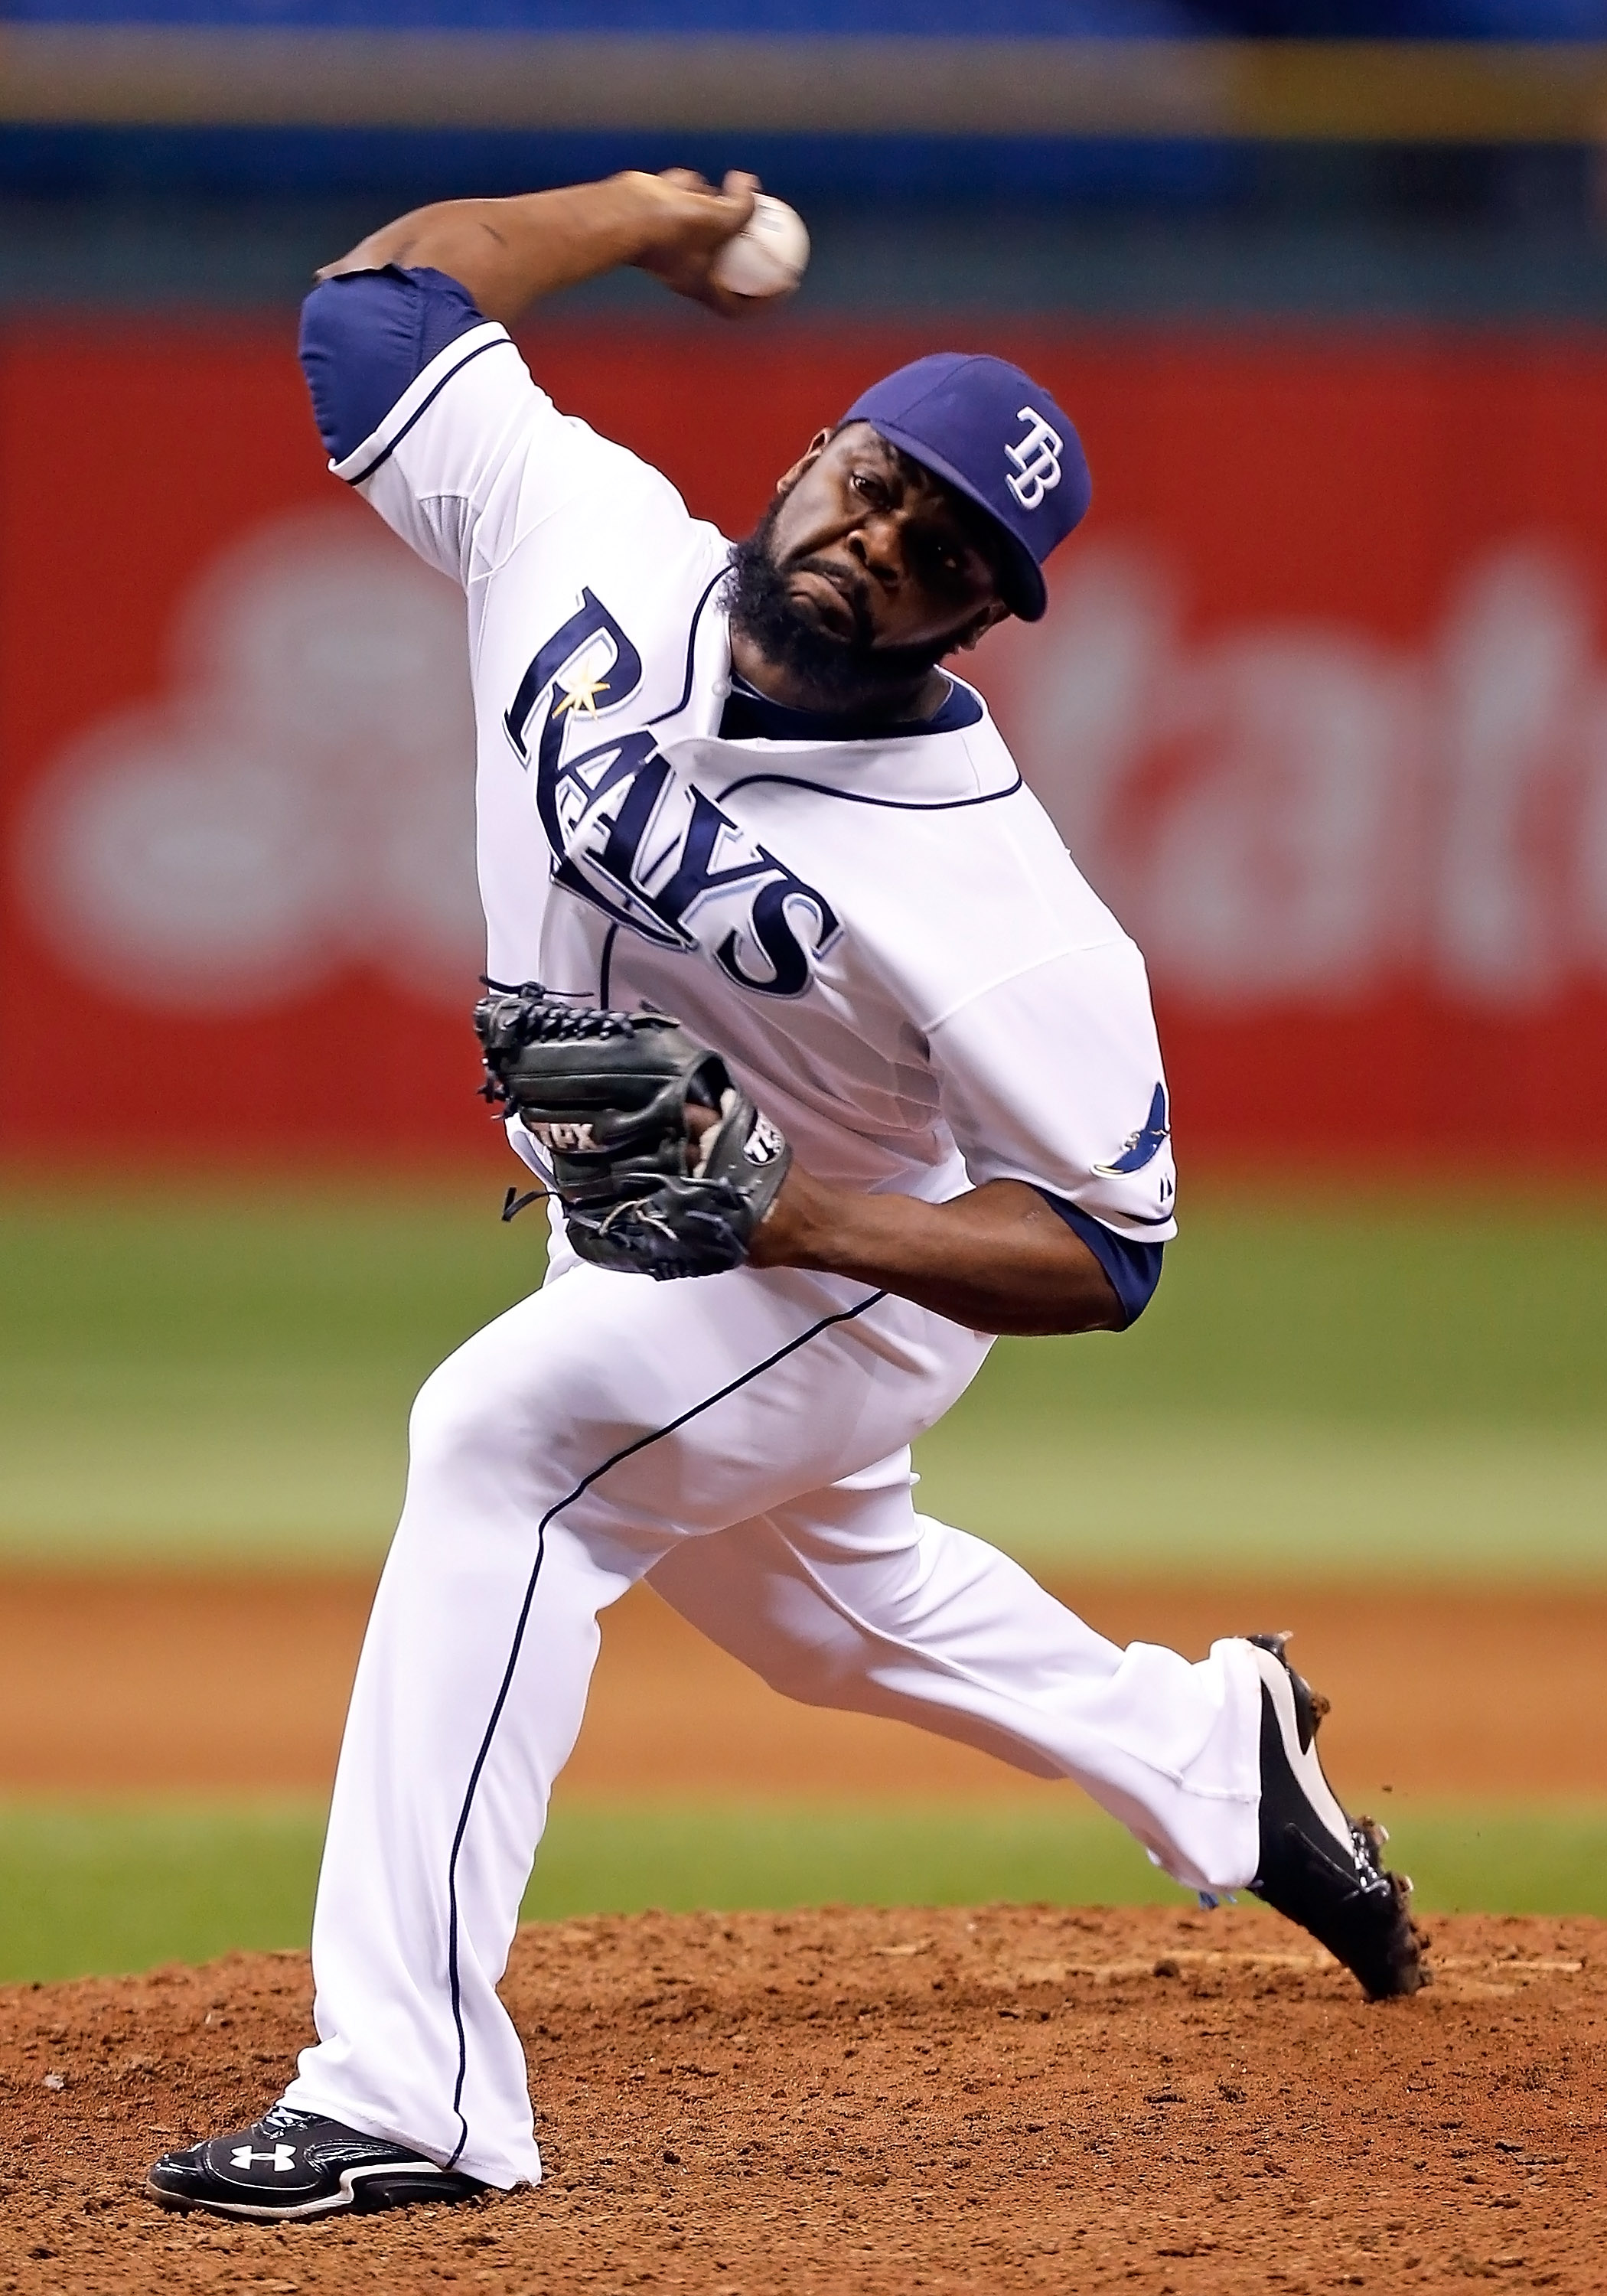 Fernando Rodney's 0.64 ERA is just off Dennis Eckersley's 0.61 record season. (Getty Images)